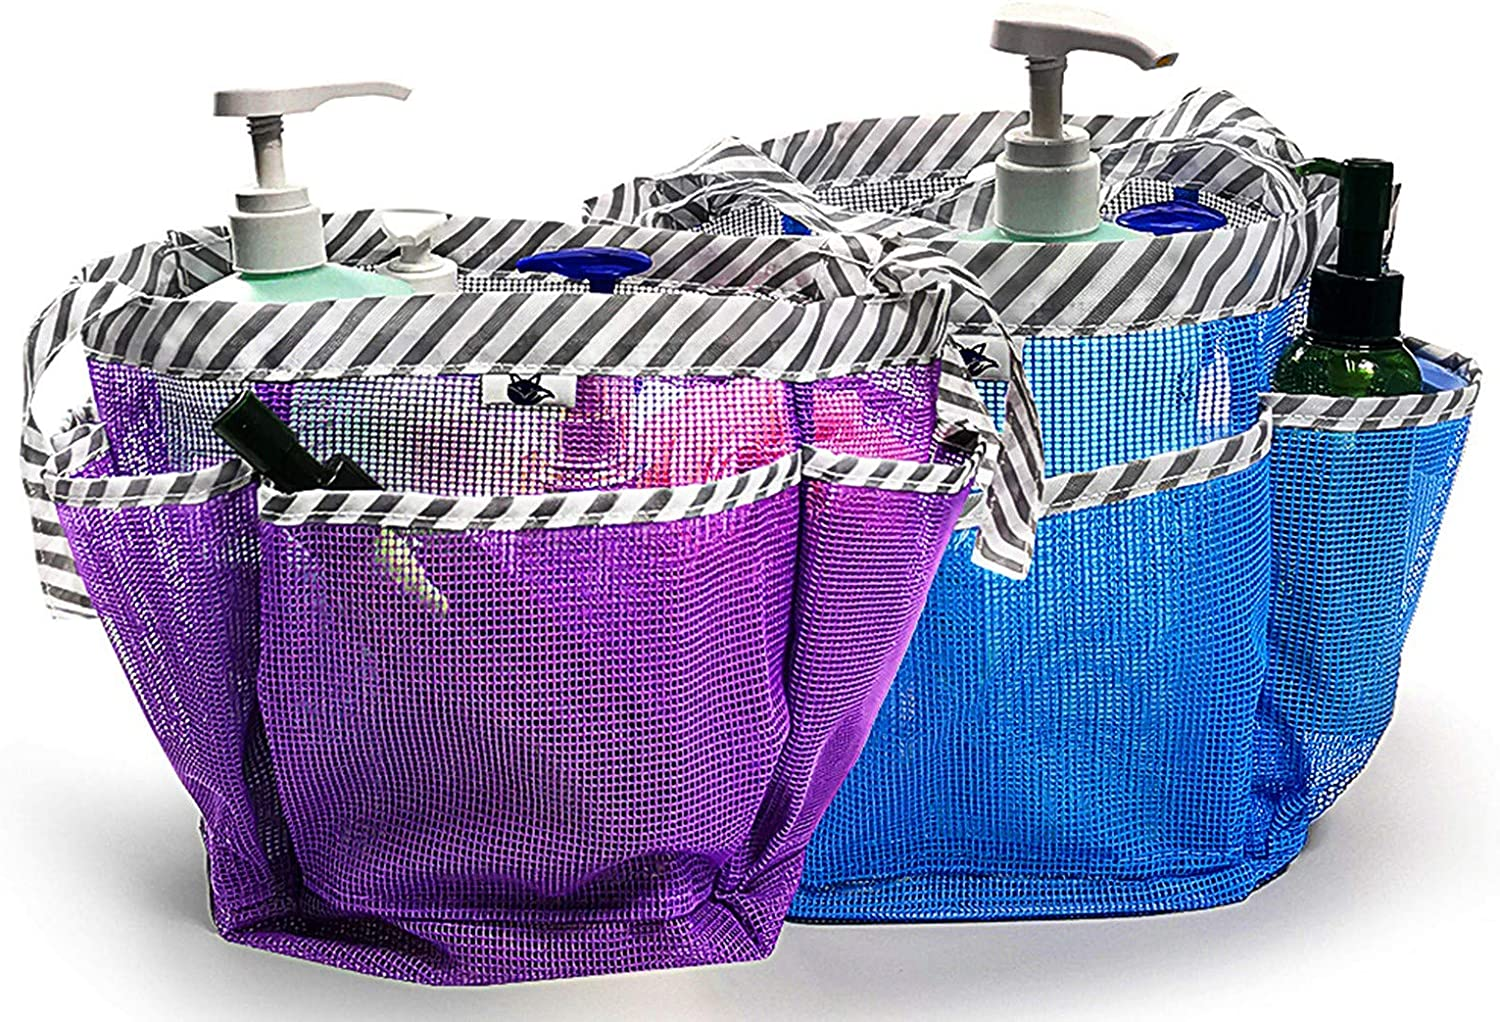 2 Super sale period limited Pack Mesh Shower Caddy Quick Gorgeous Tote Toil Hanging Dry Bag